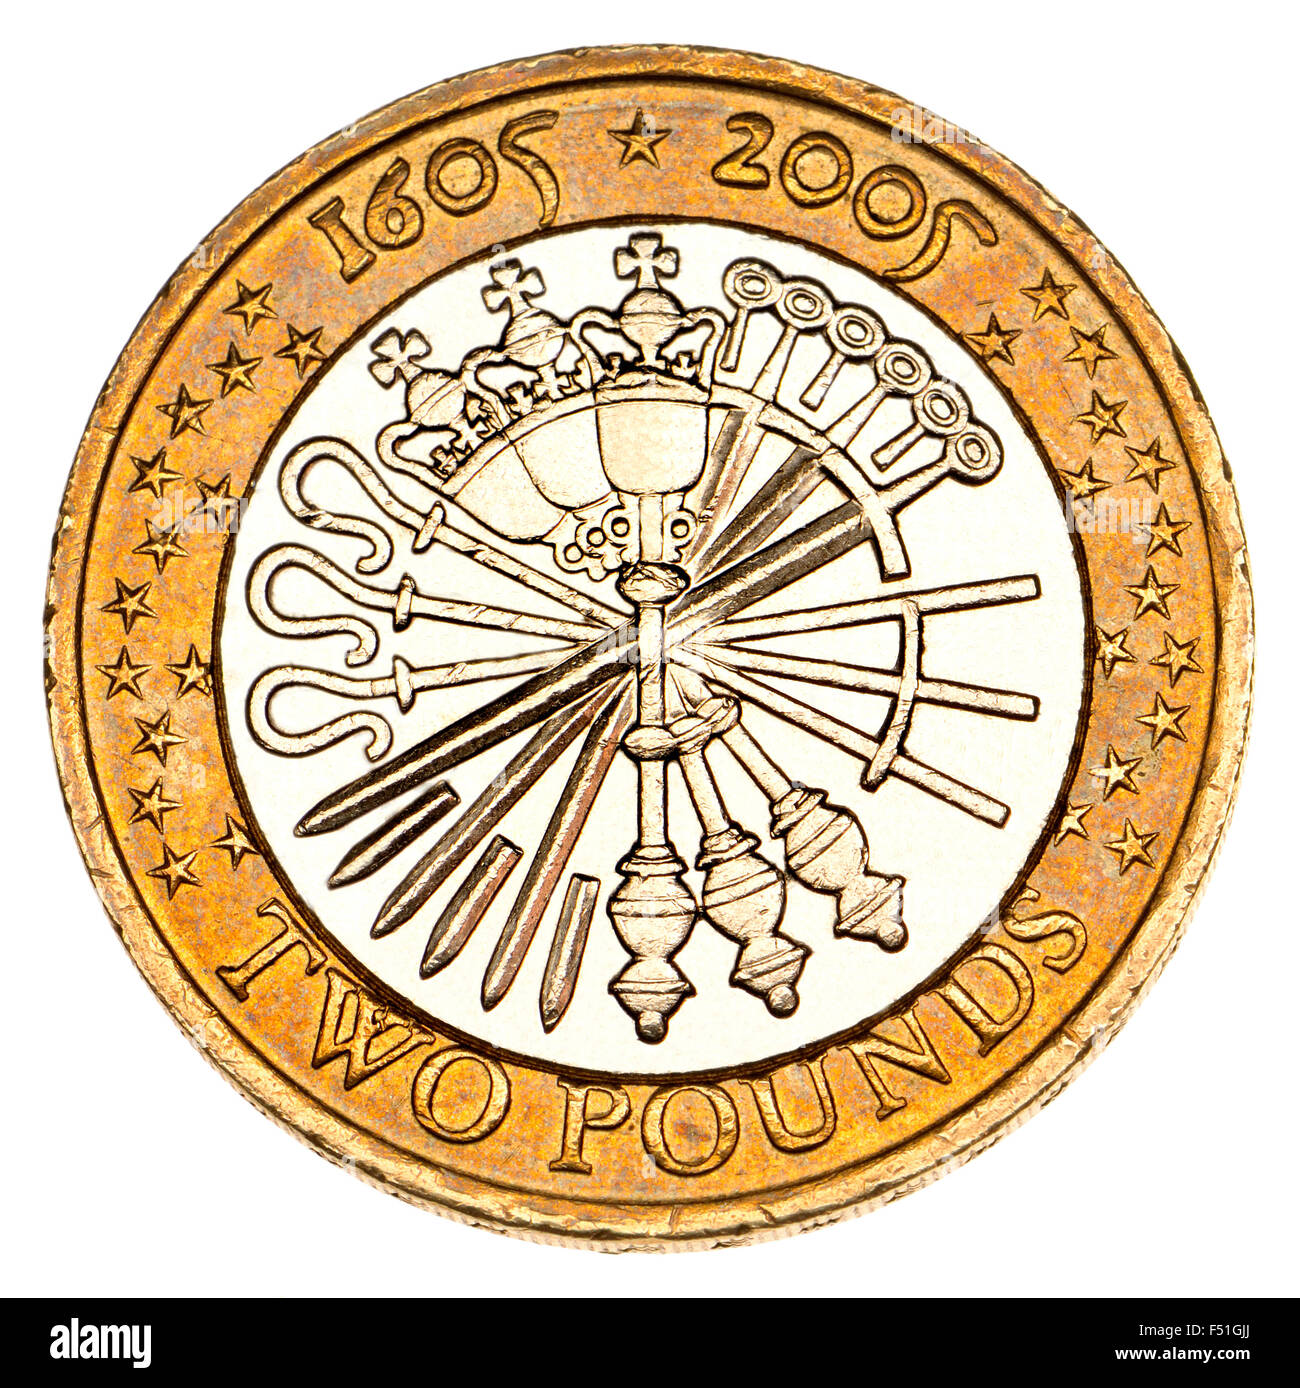 British £2 coin (2005) commemorating the 400th anniversary of the Gunpowder Plot. An arrangement of crossiers, - Stock Image